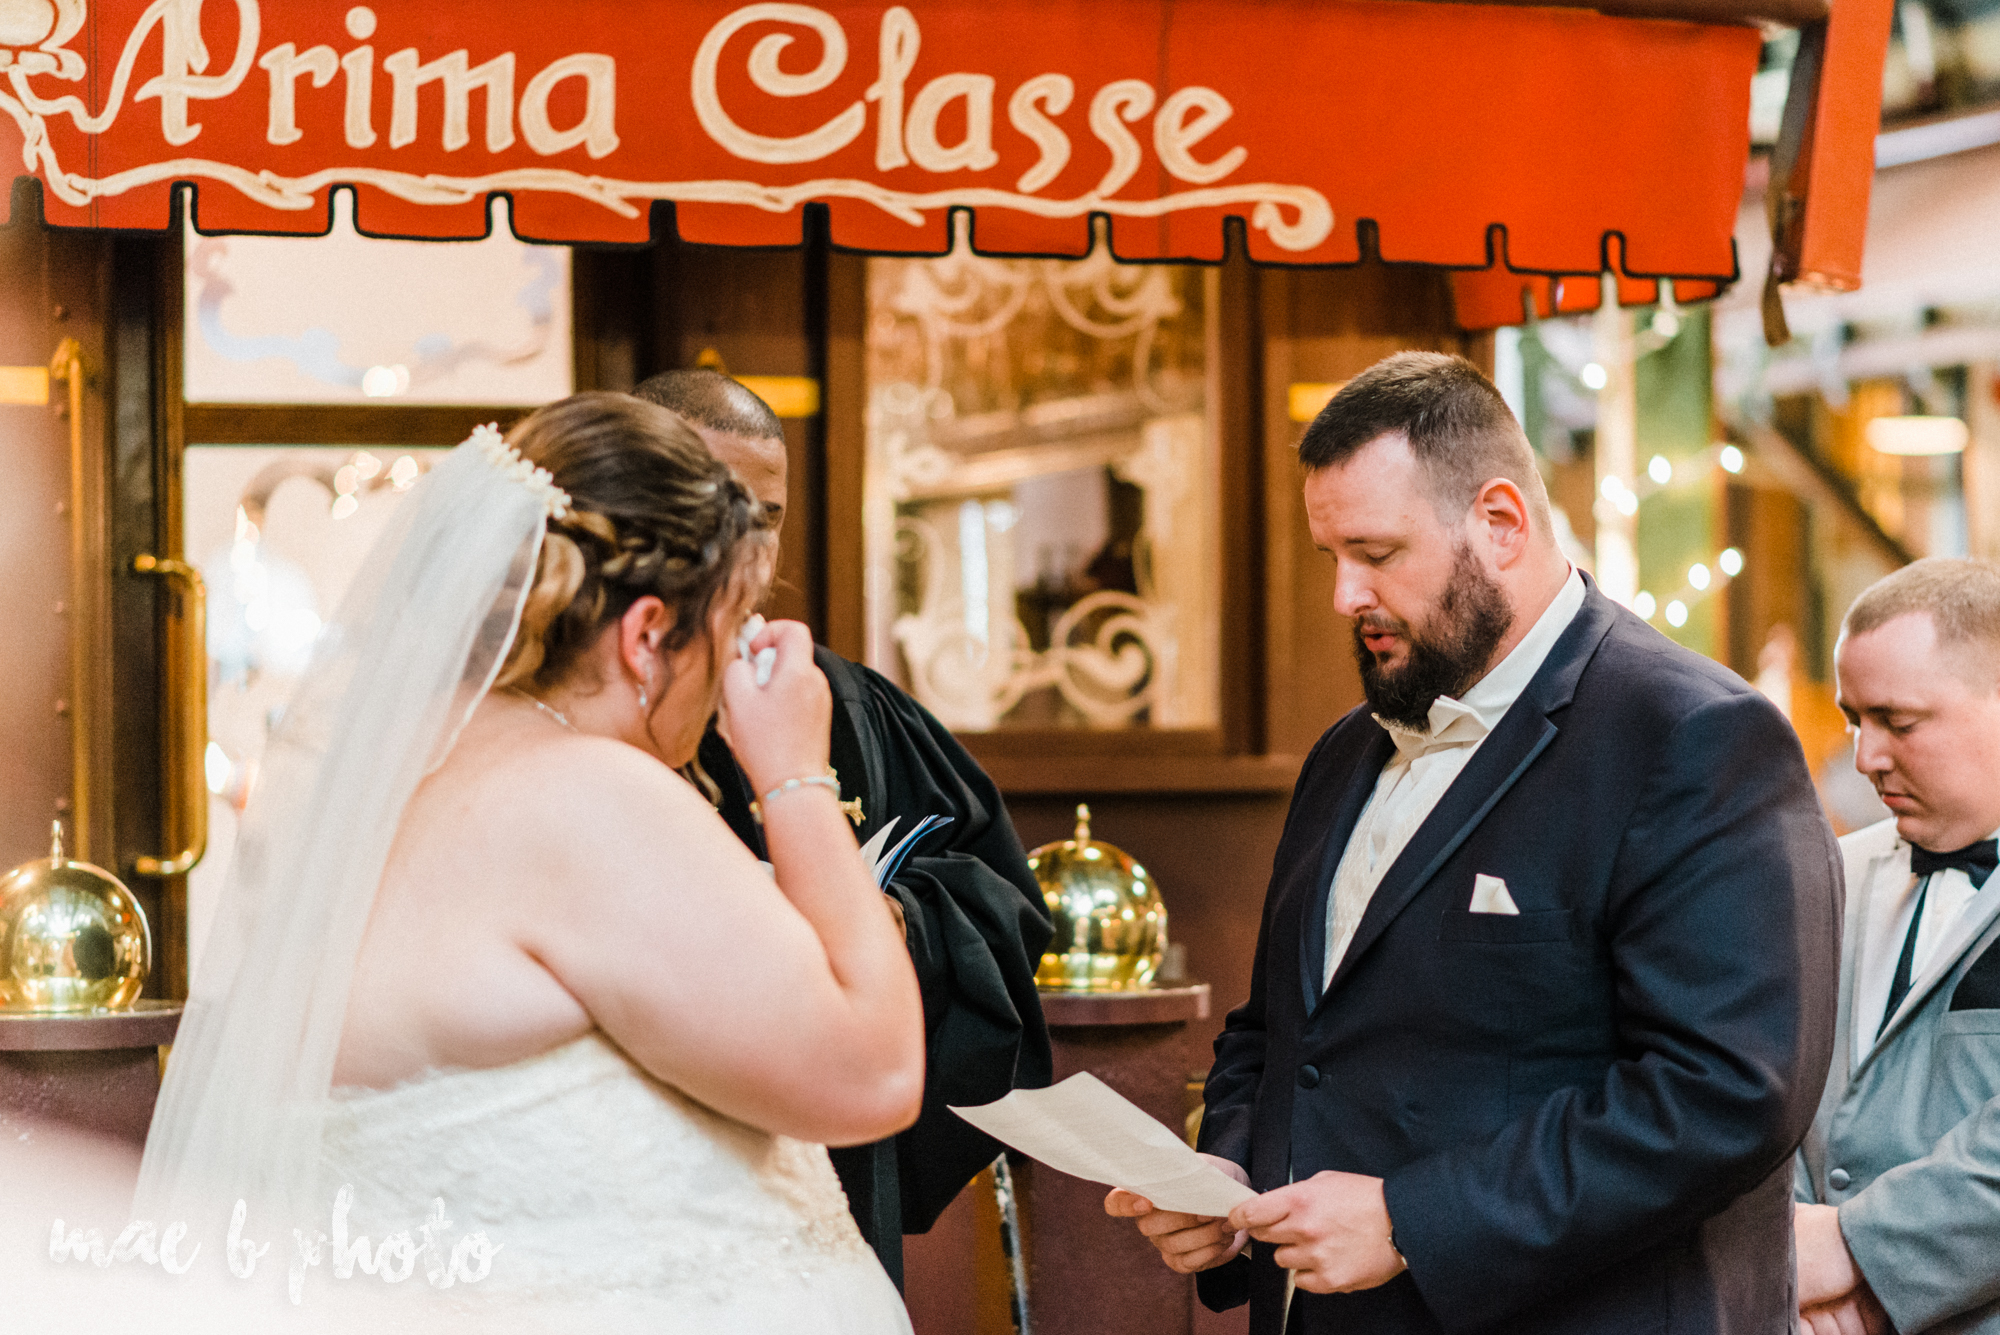 Kristina and ryan's personal vintage glam fall wedding at disalvo's station restaurant and the arnold palmer latrobe country club in latrobe, pa photographed by youngstown wedding photographer mae b photo-62.jpg